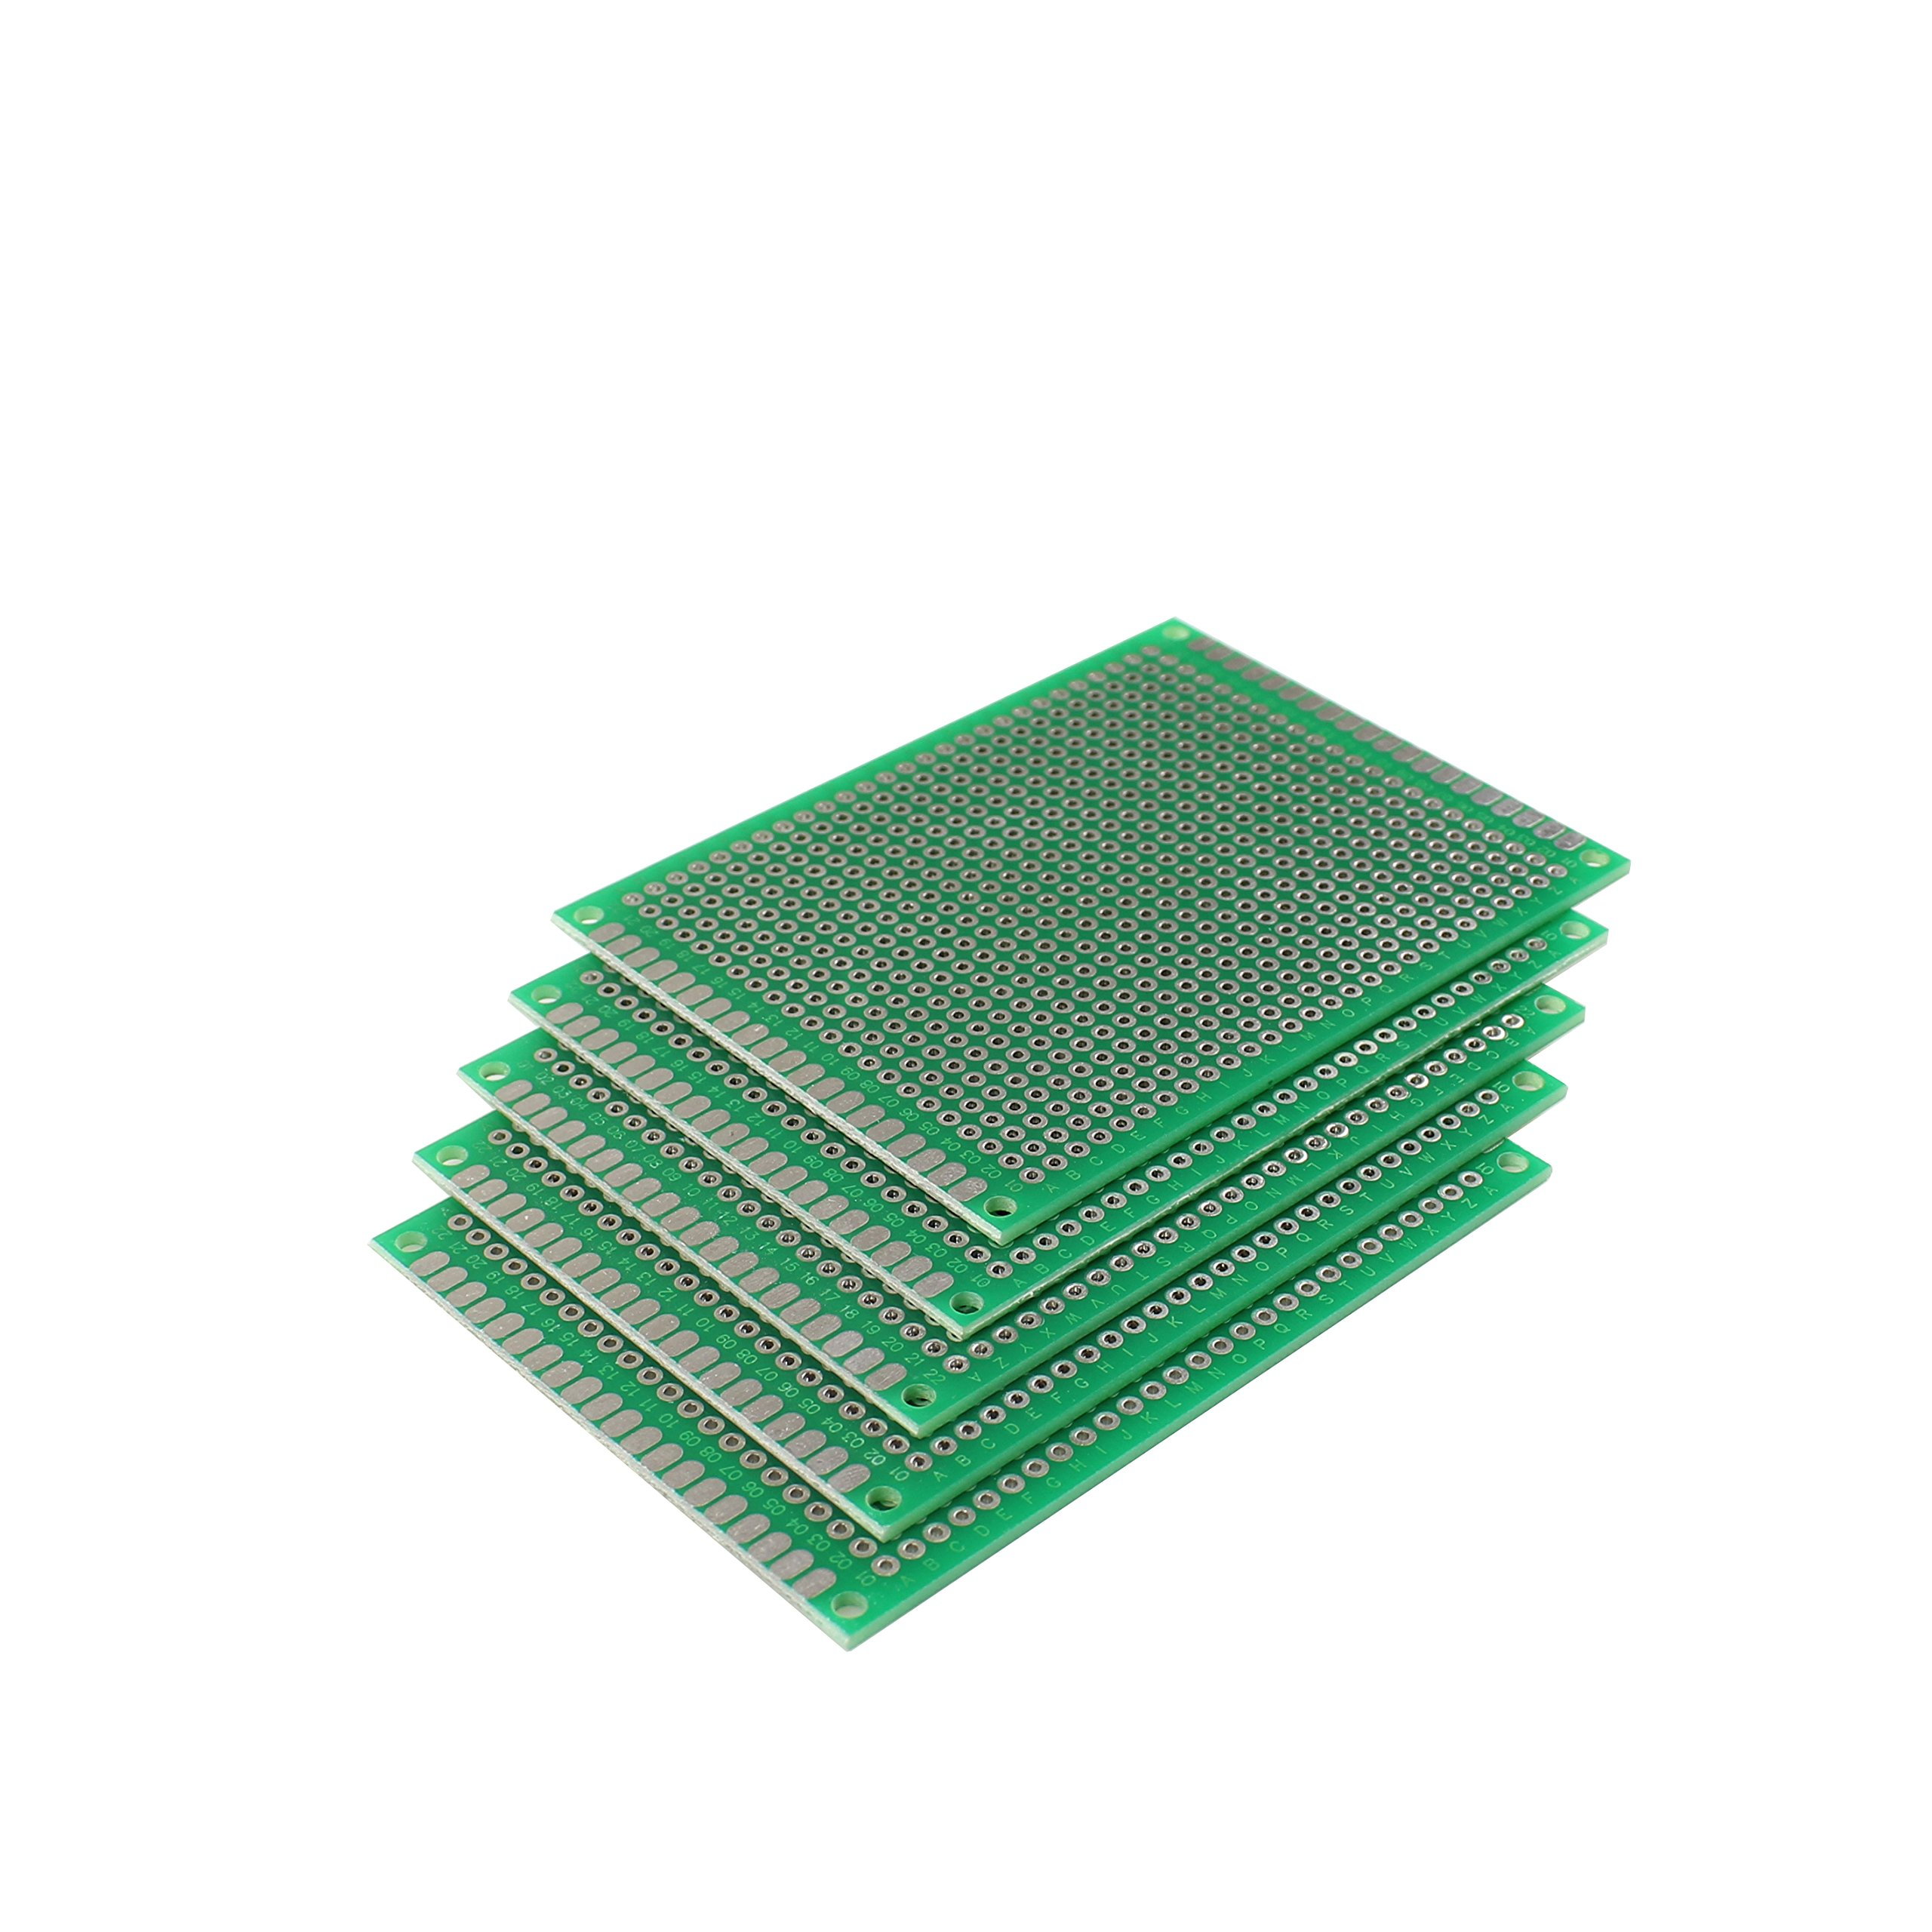 Best Rated In Prototyping Boards Helpful Customer Reviews Prototypes Multi Circuit Hooddeal 5 Pcs 6x8cm Double Side Prototype Pcb Universal Printed Board Product Image